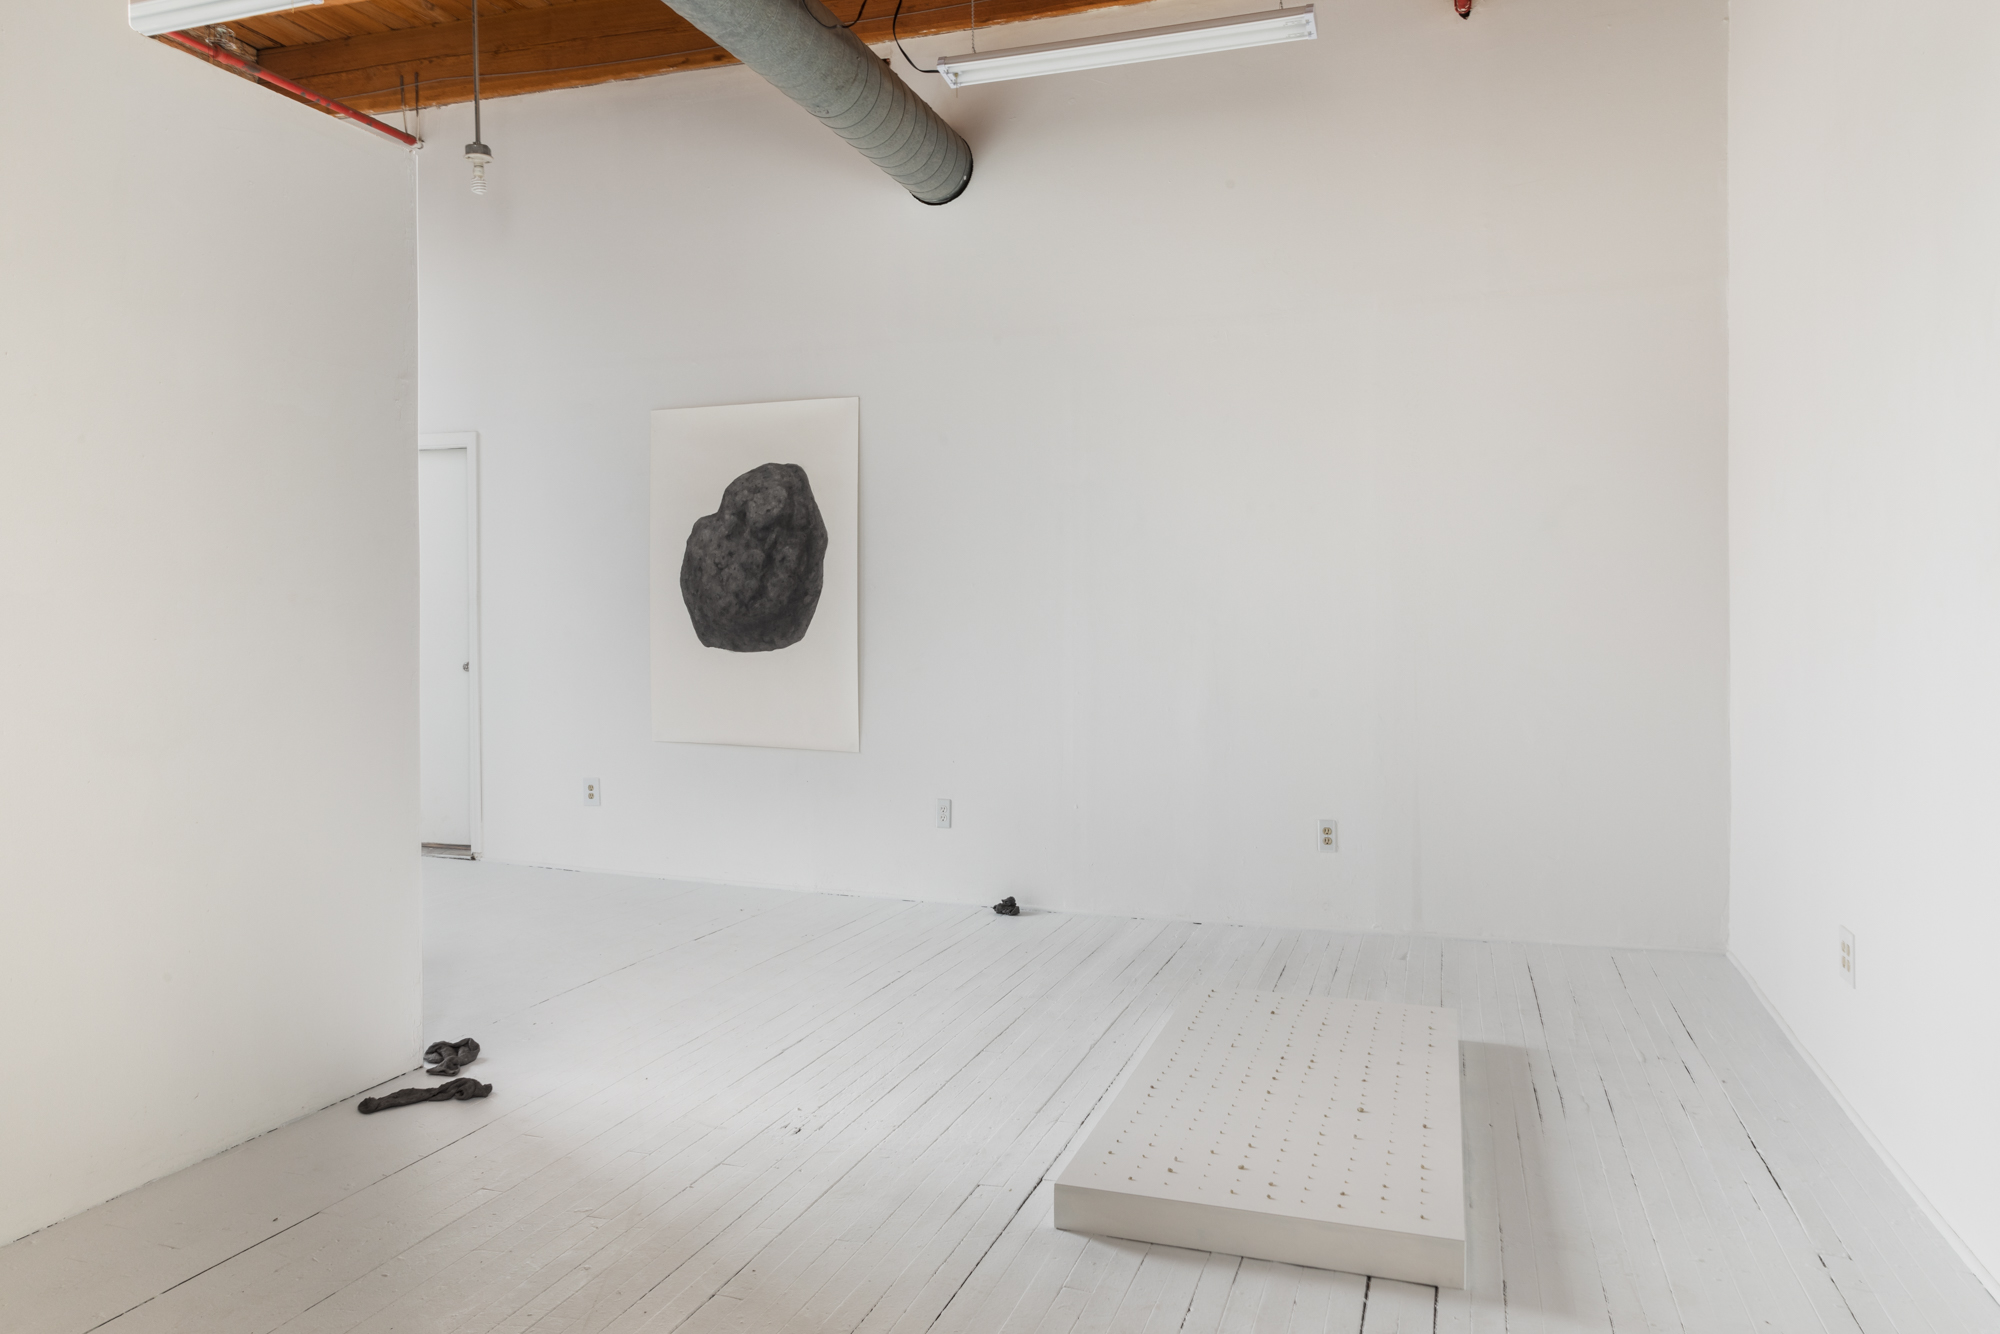 Soo Shin\ install view of 'A Collection of Tears 2012-Present' at Bar 4000 gallery\ 2019 (Photo credit Bar4000/Evan Jenkins)